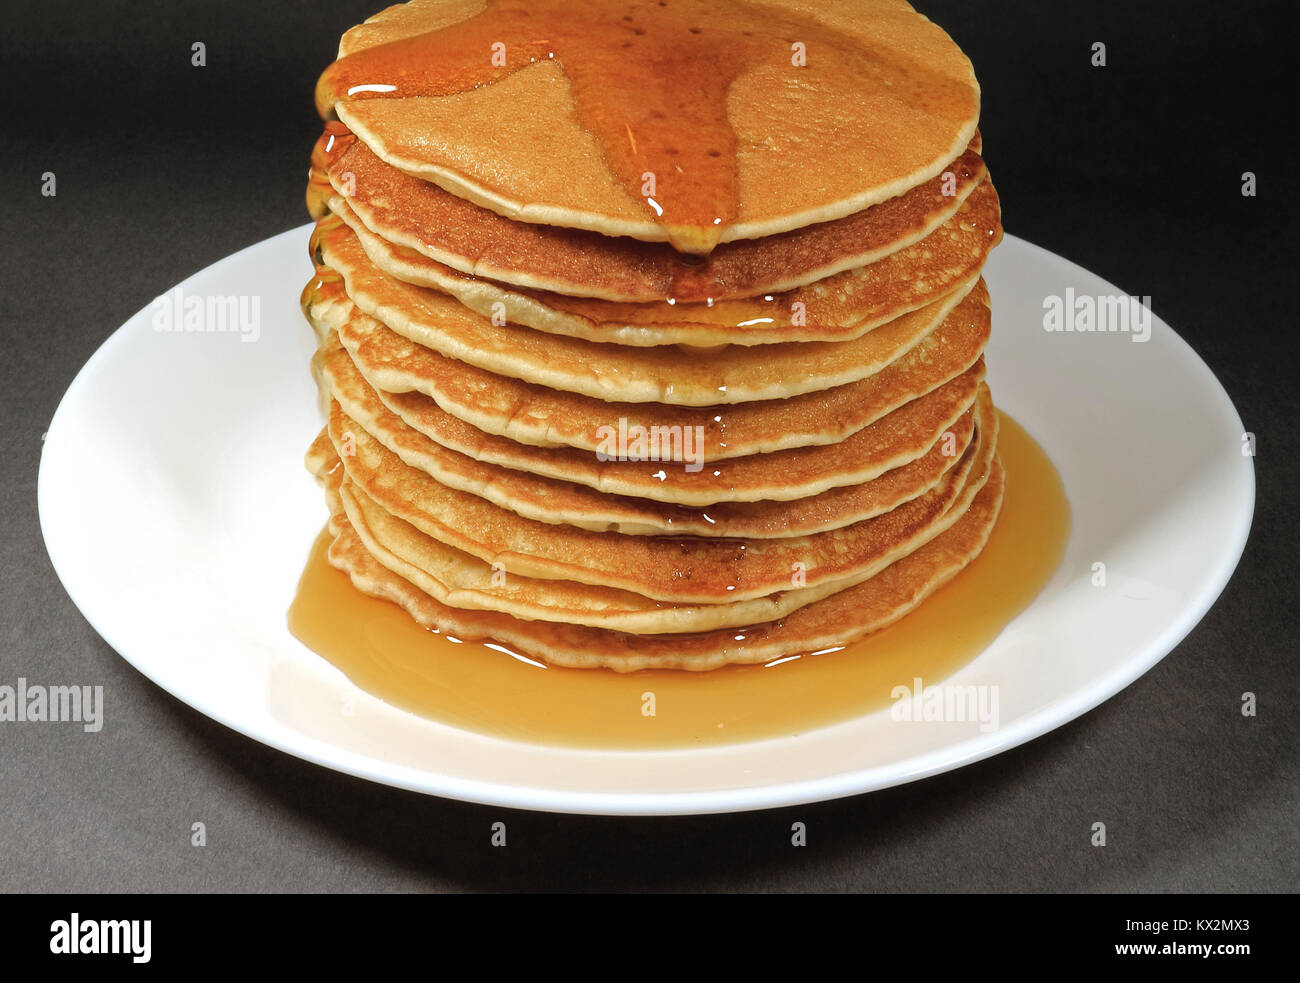 Pile of Fresh Homemade Pancakes Served with Maple Syrup on White Plate, Isolated on Black Background Stock Photo